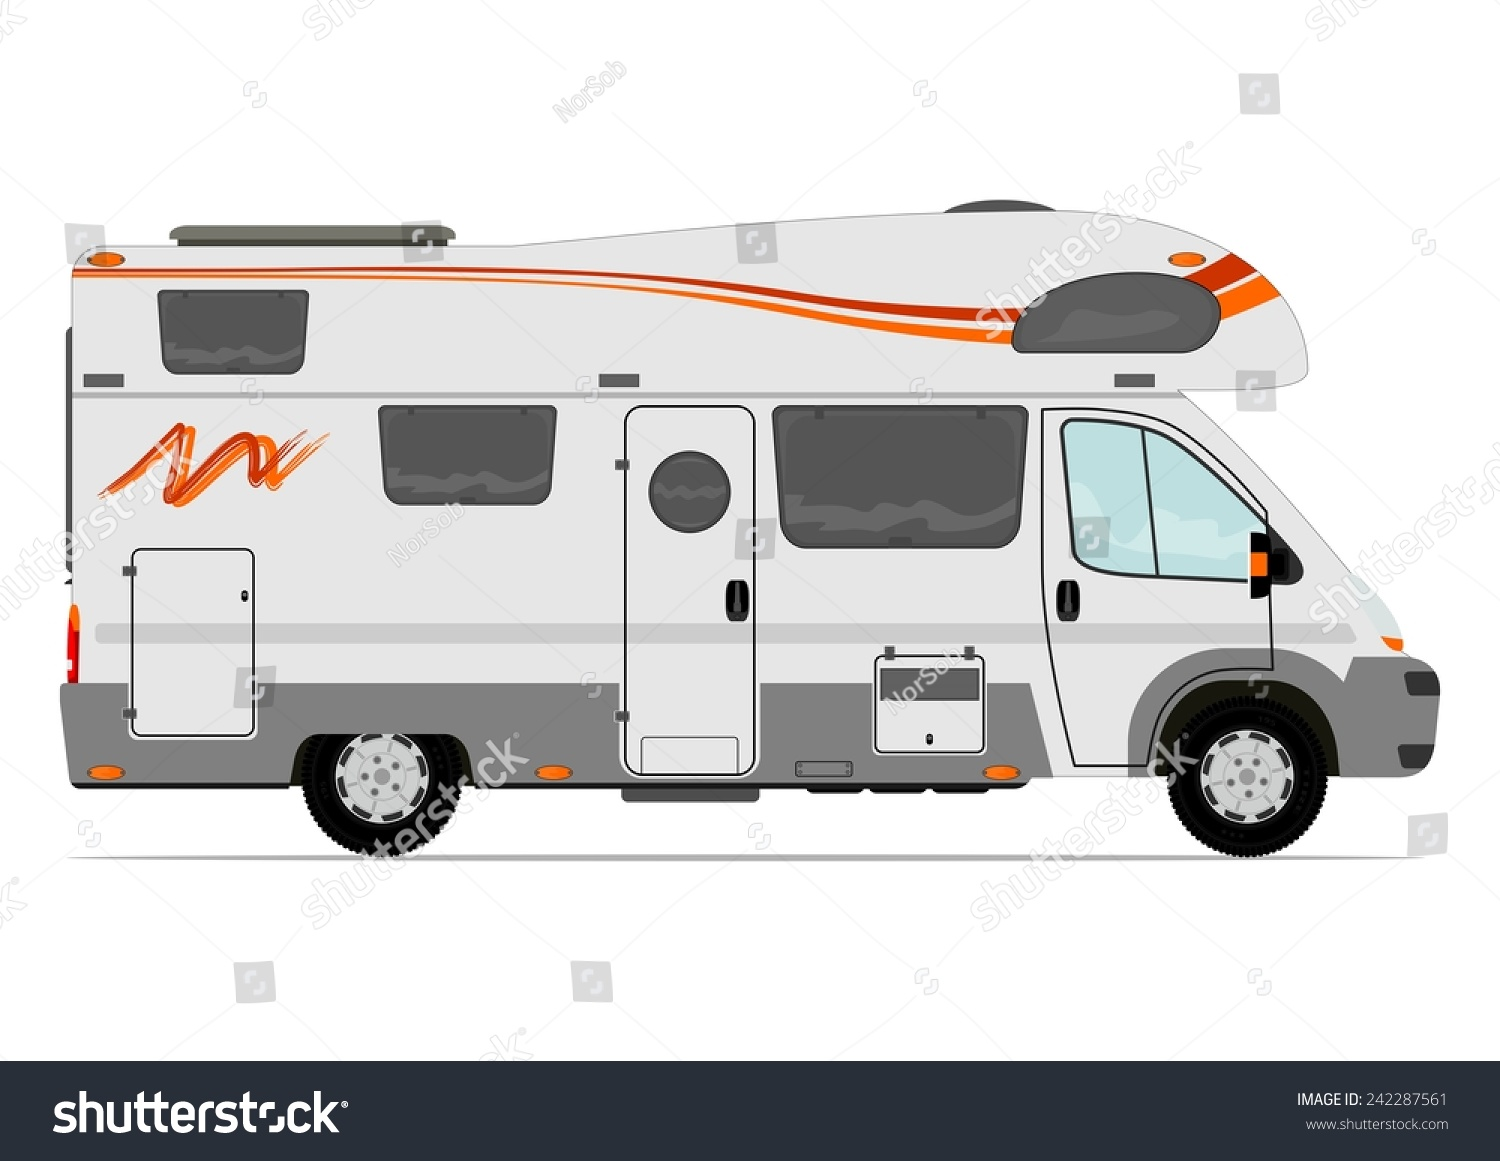 Modern Camper Van Vector Without Gradient Stock Vector 242287561